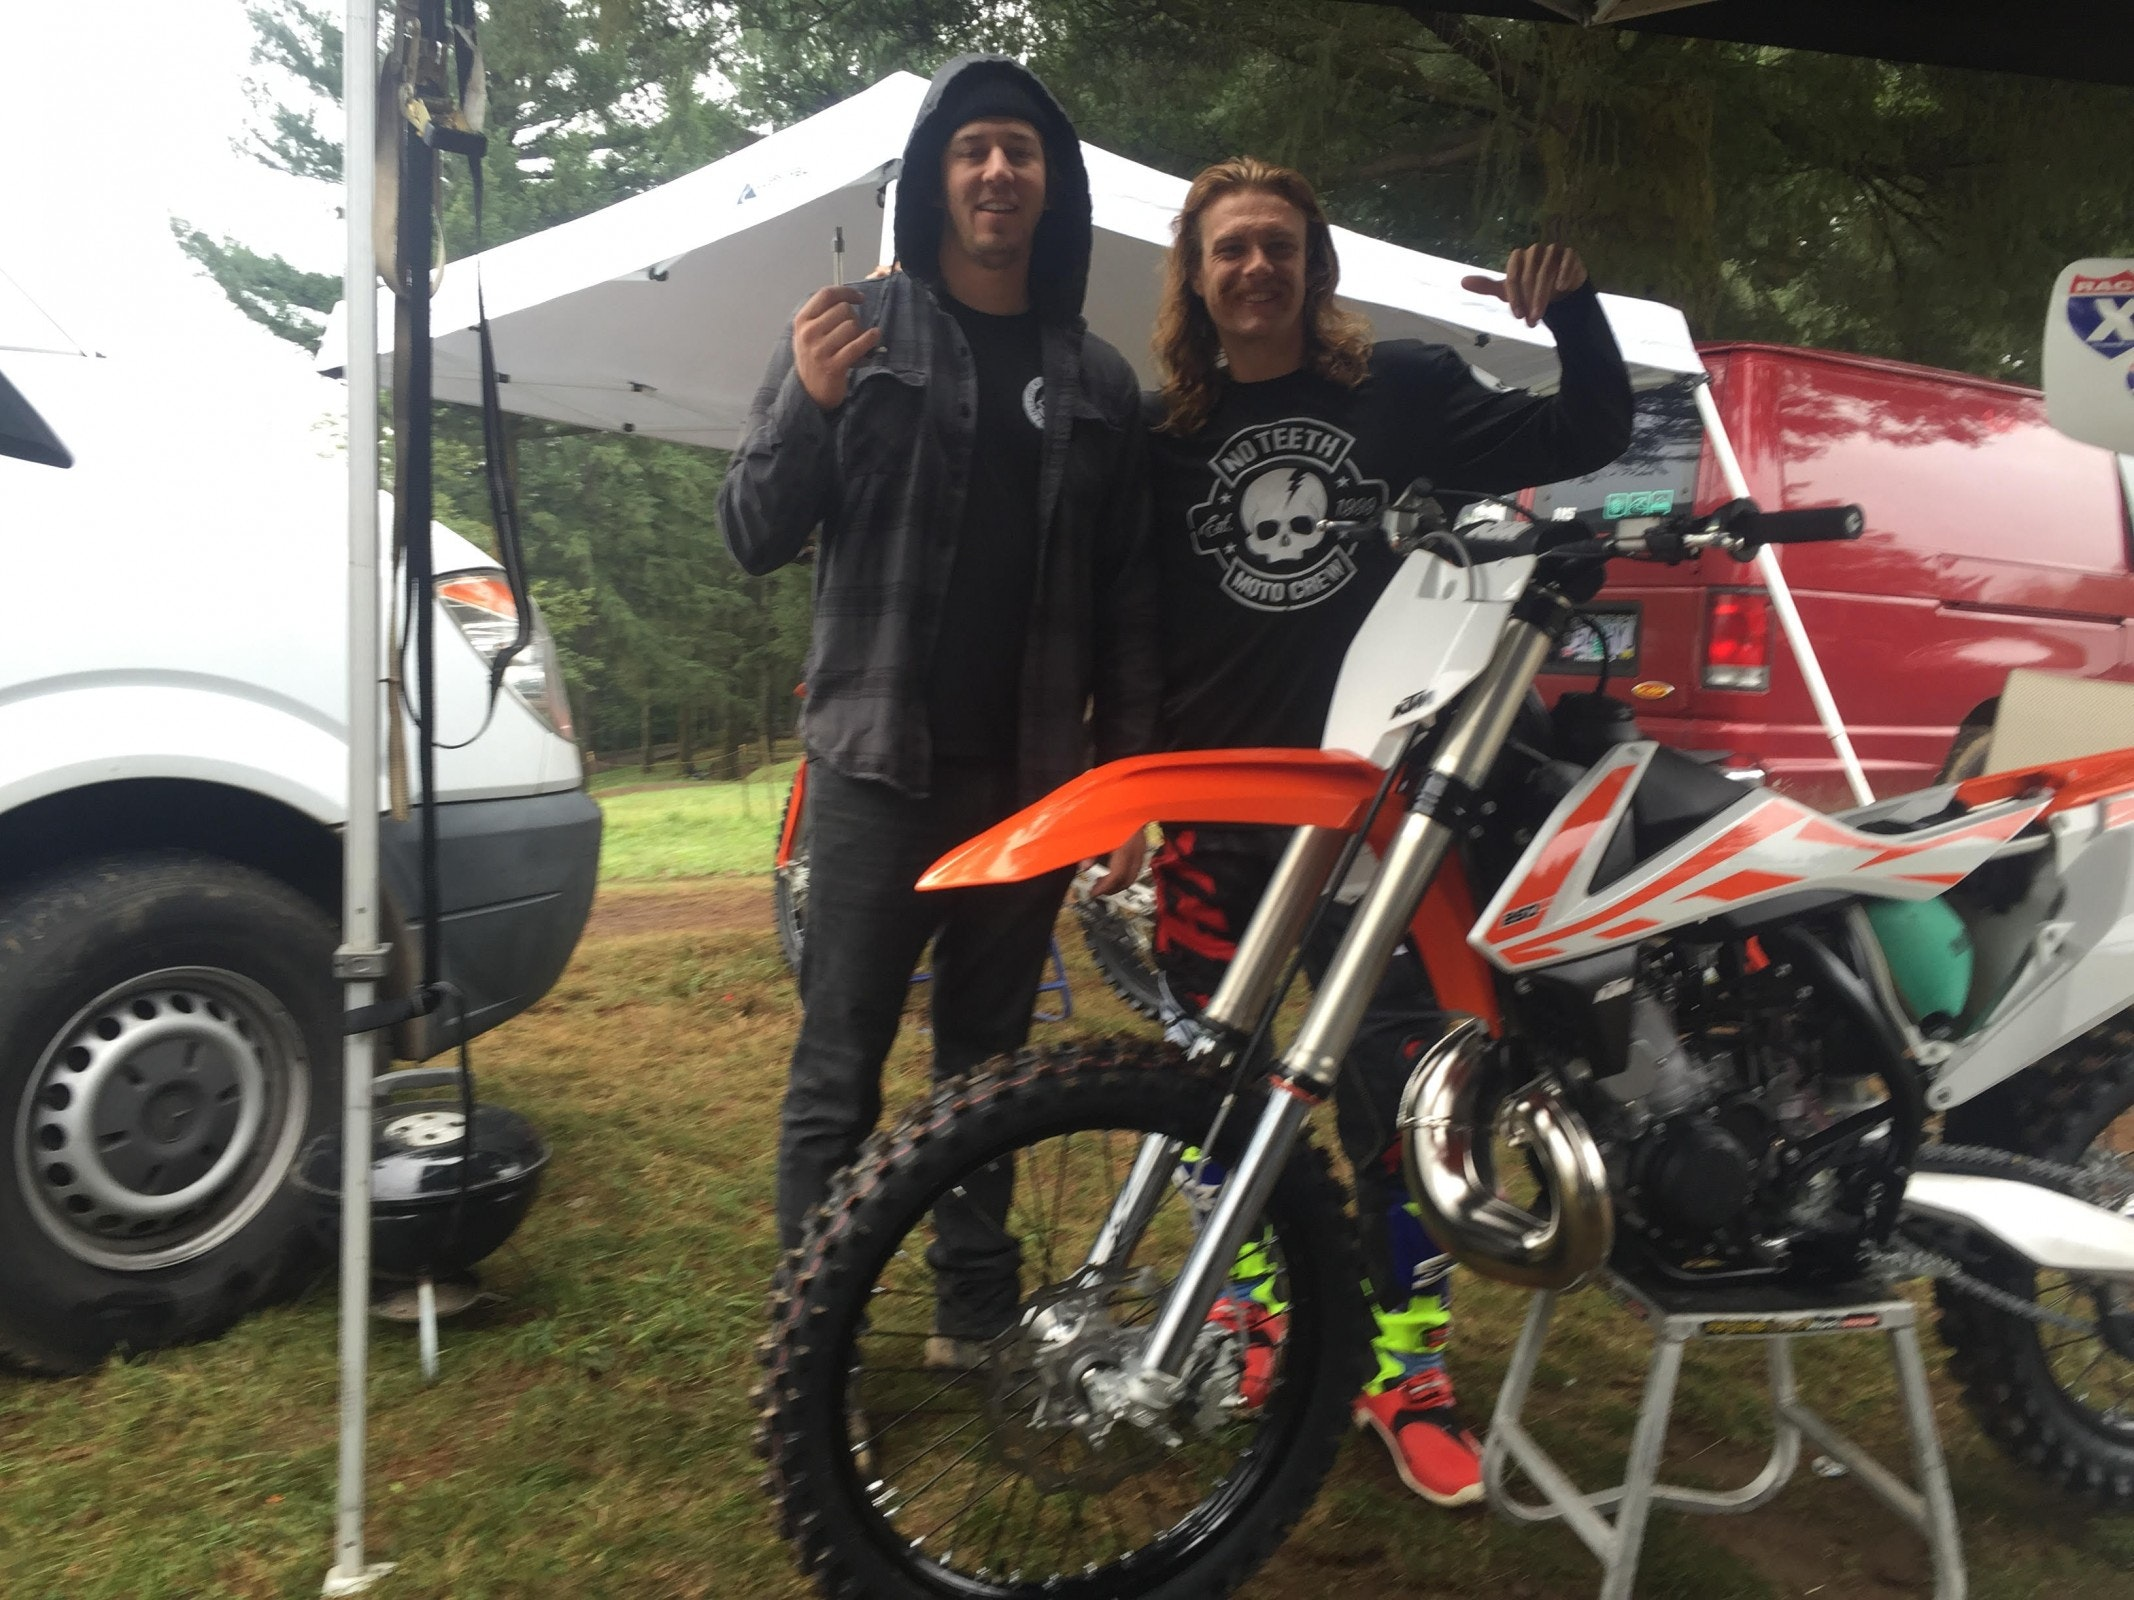 Stank put his faith in me to swap out his forks on the KTM 250.